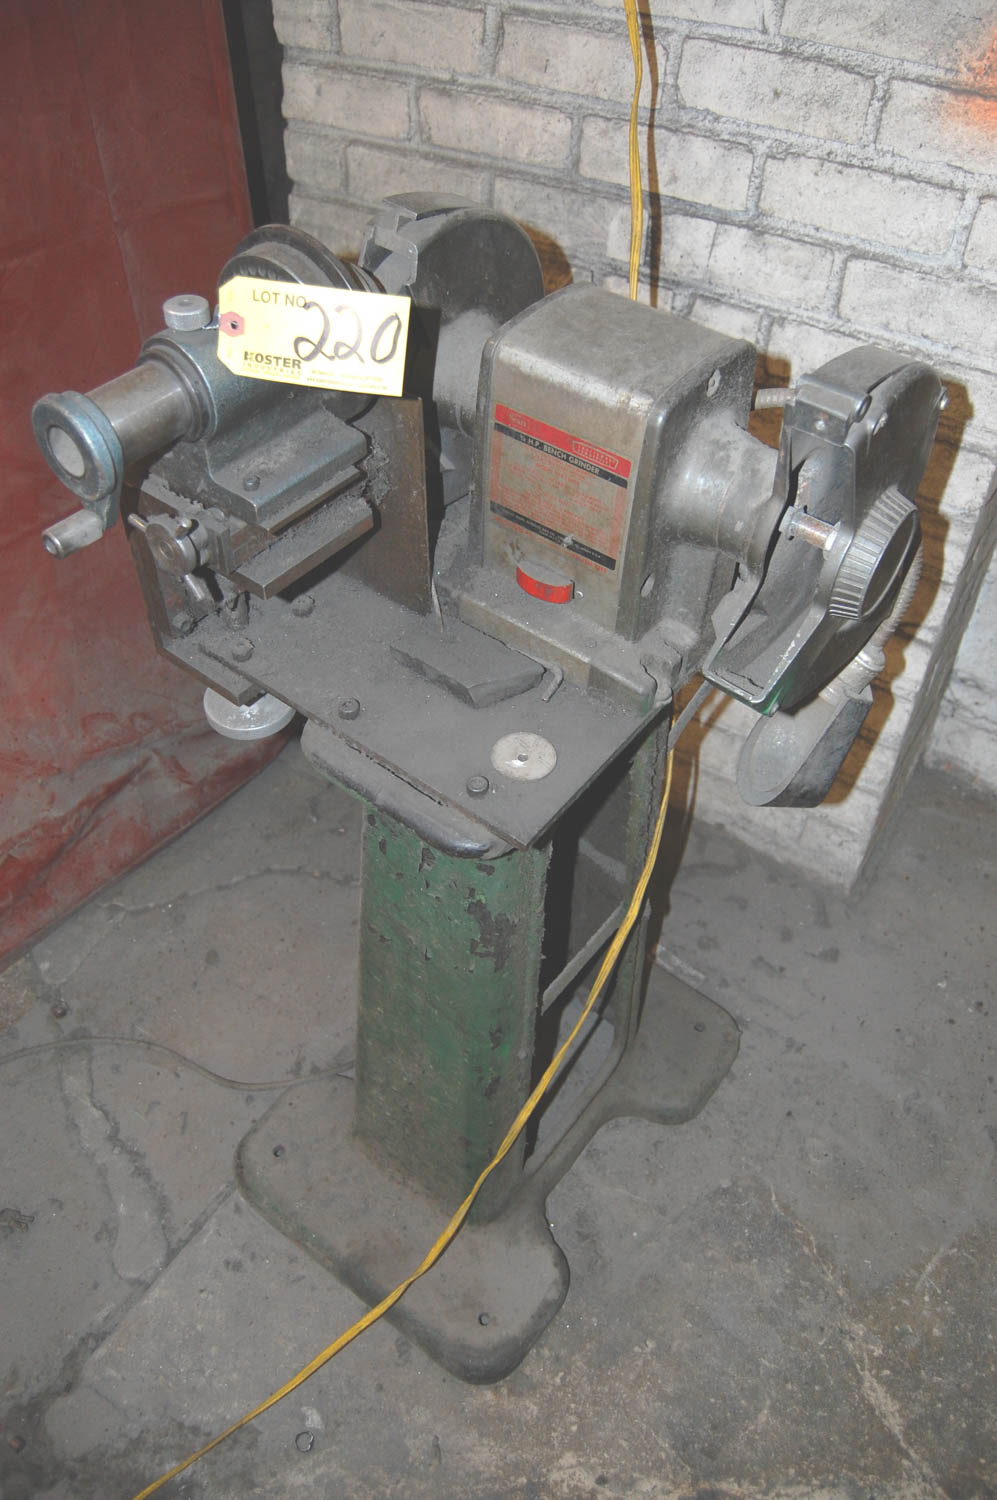 Astounding Sears Mdl 397 19450 Double End Bench Grinder Mounted On A Lamtechconsult Wood Chair Design Ideas Lamtechconsultcom